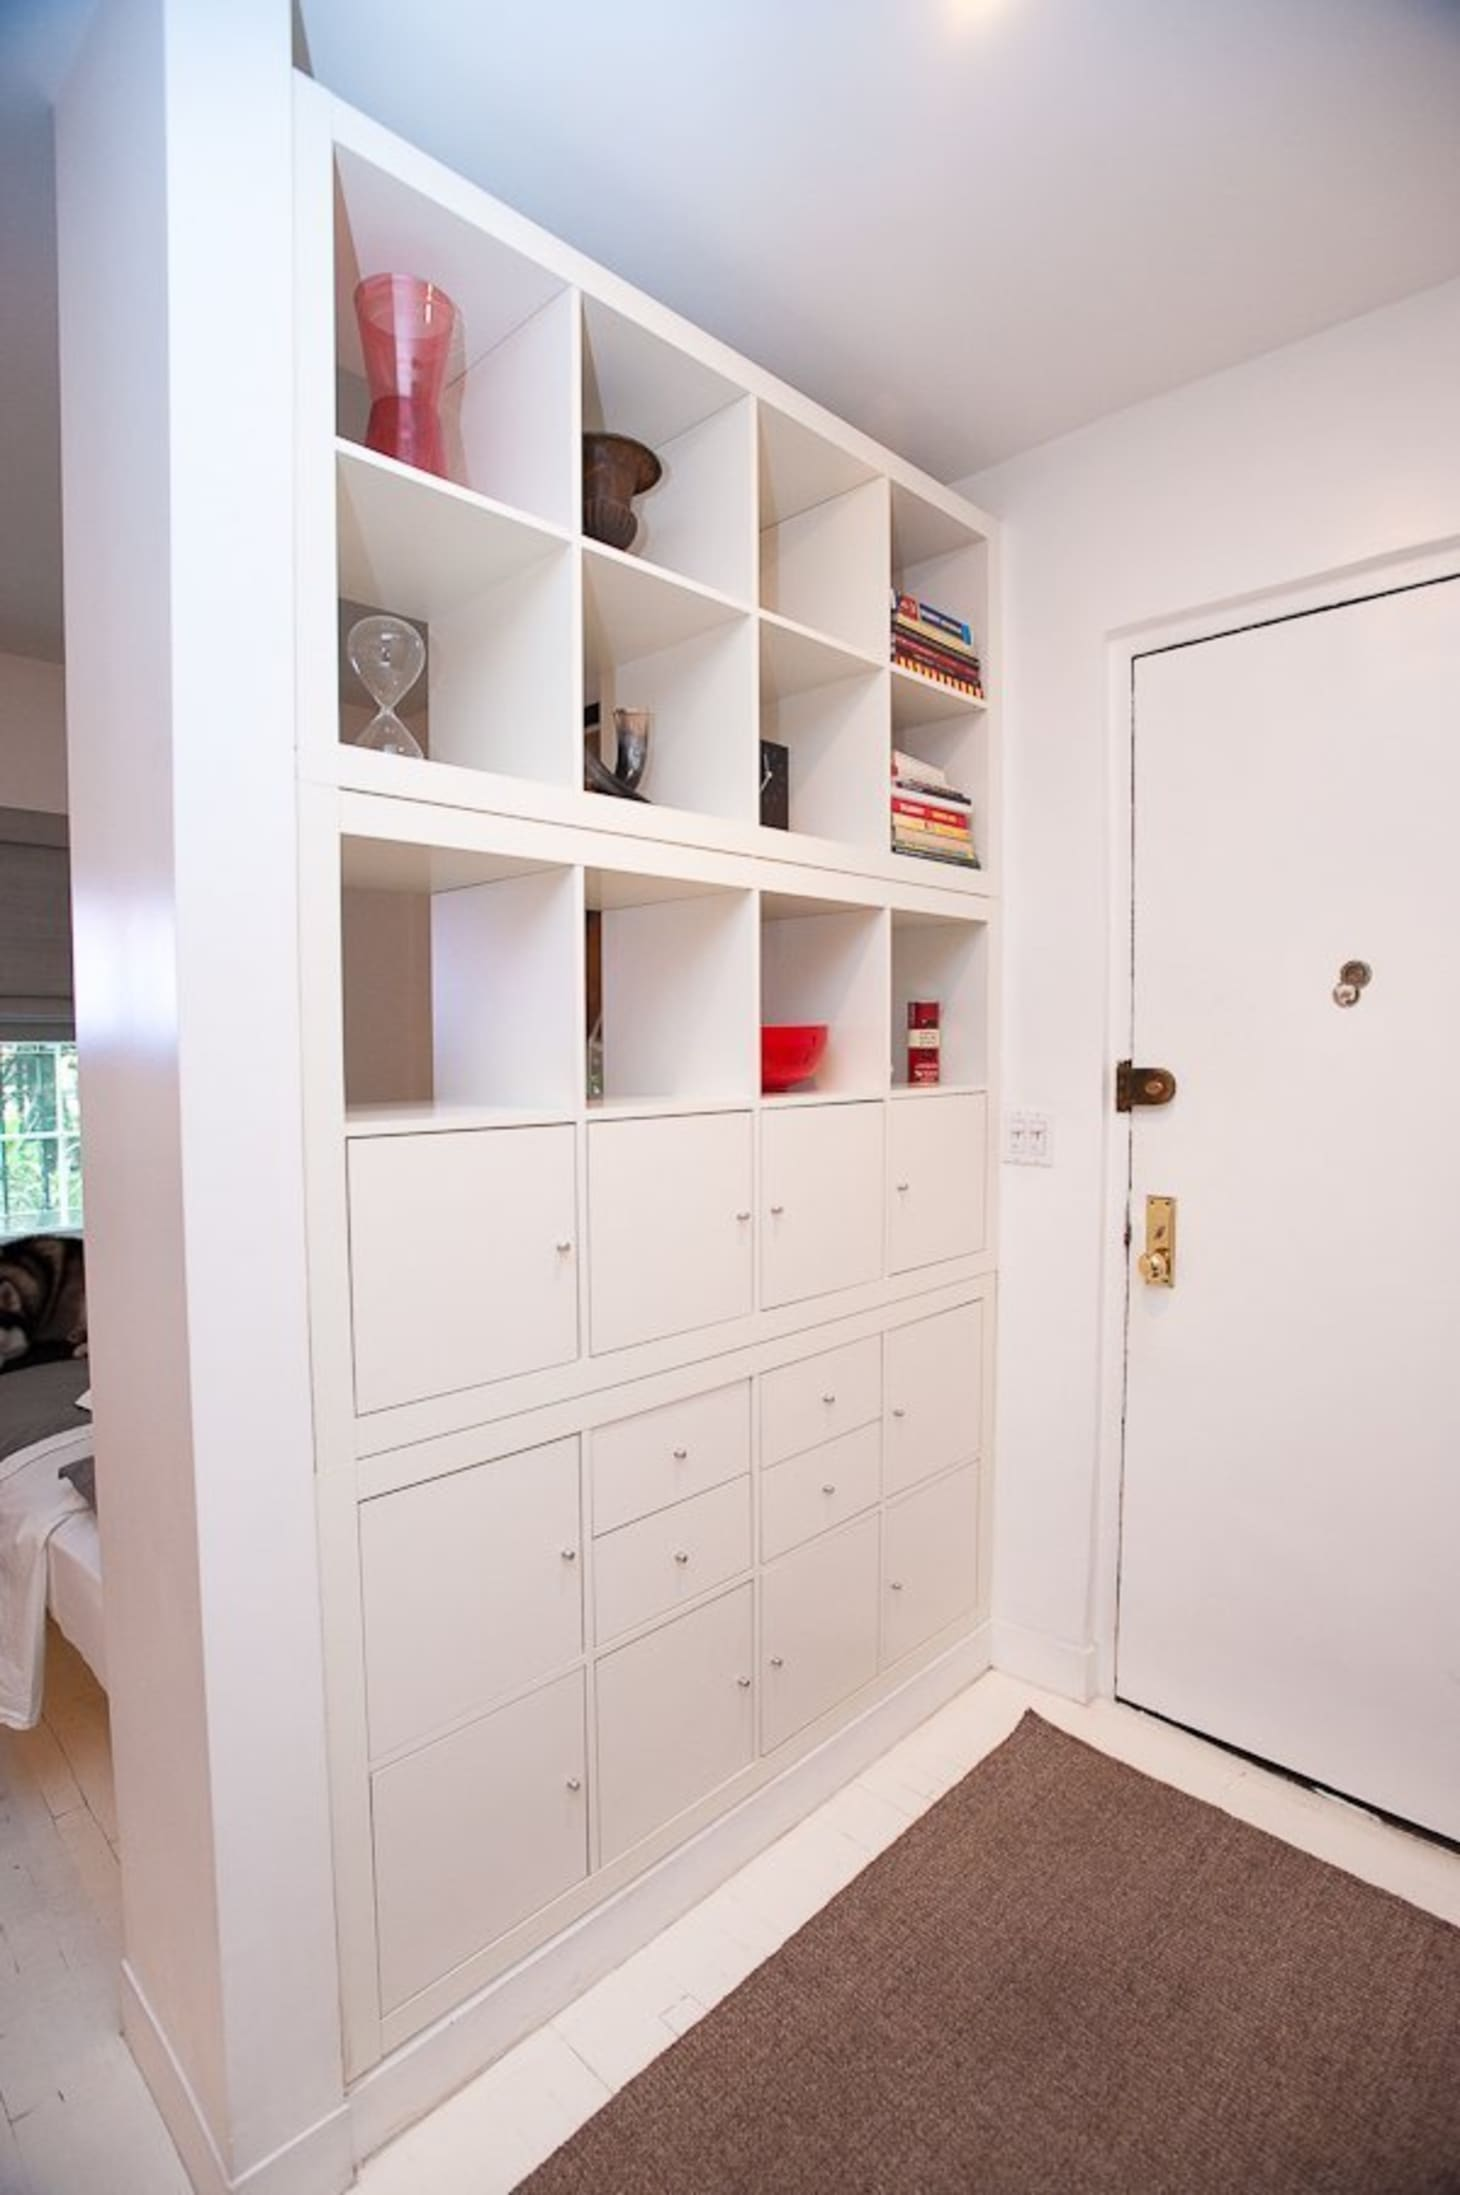 10 Ideas For Dividing Small Spaces Apartment Therapy